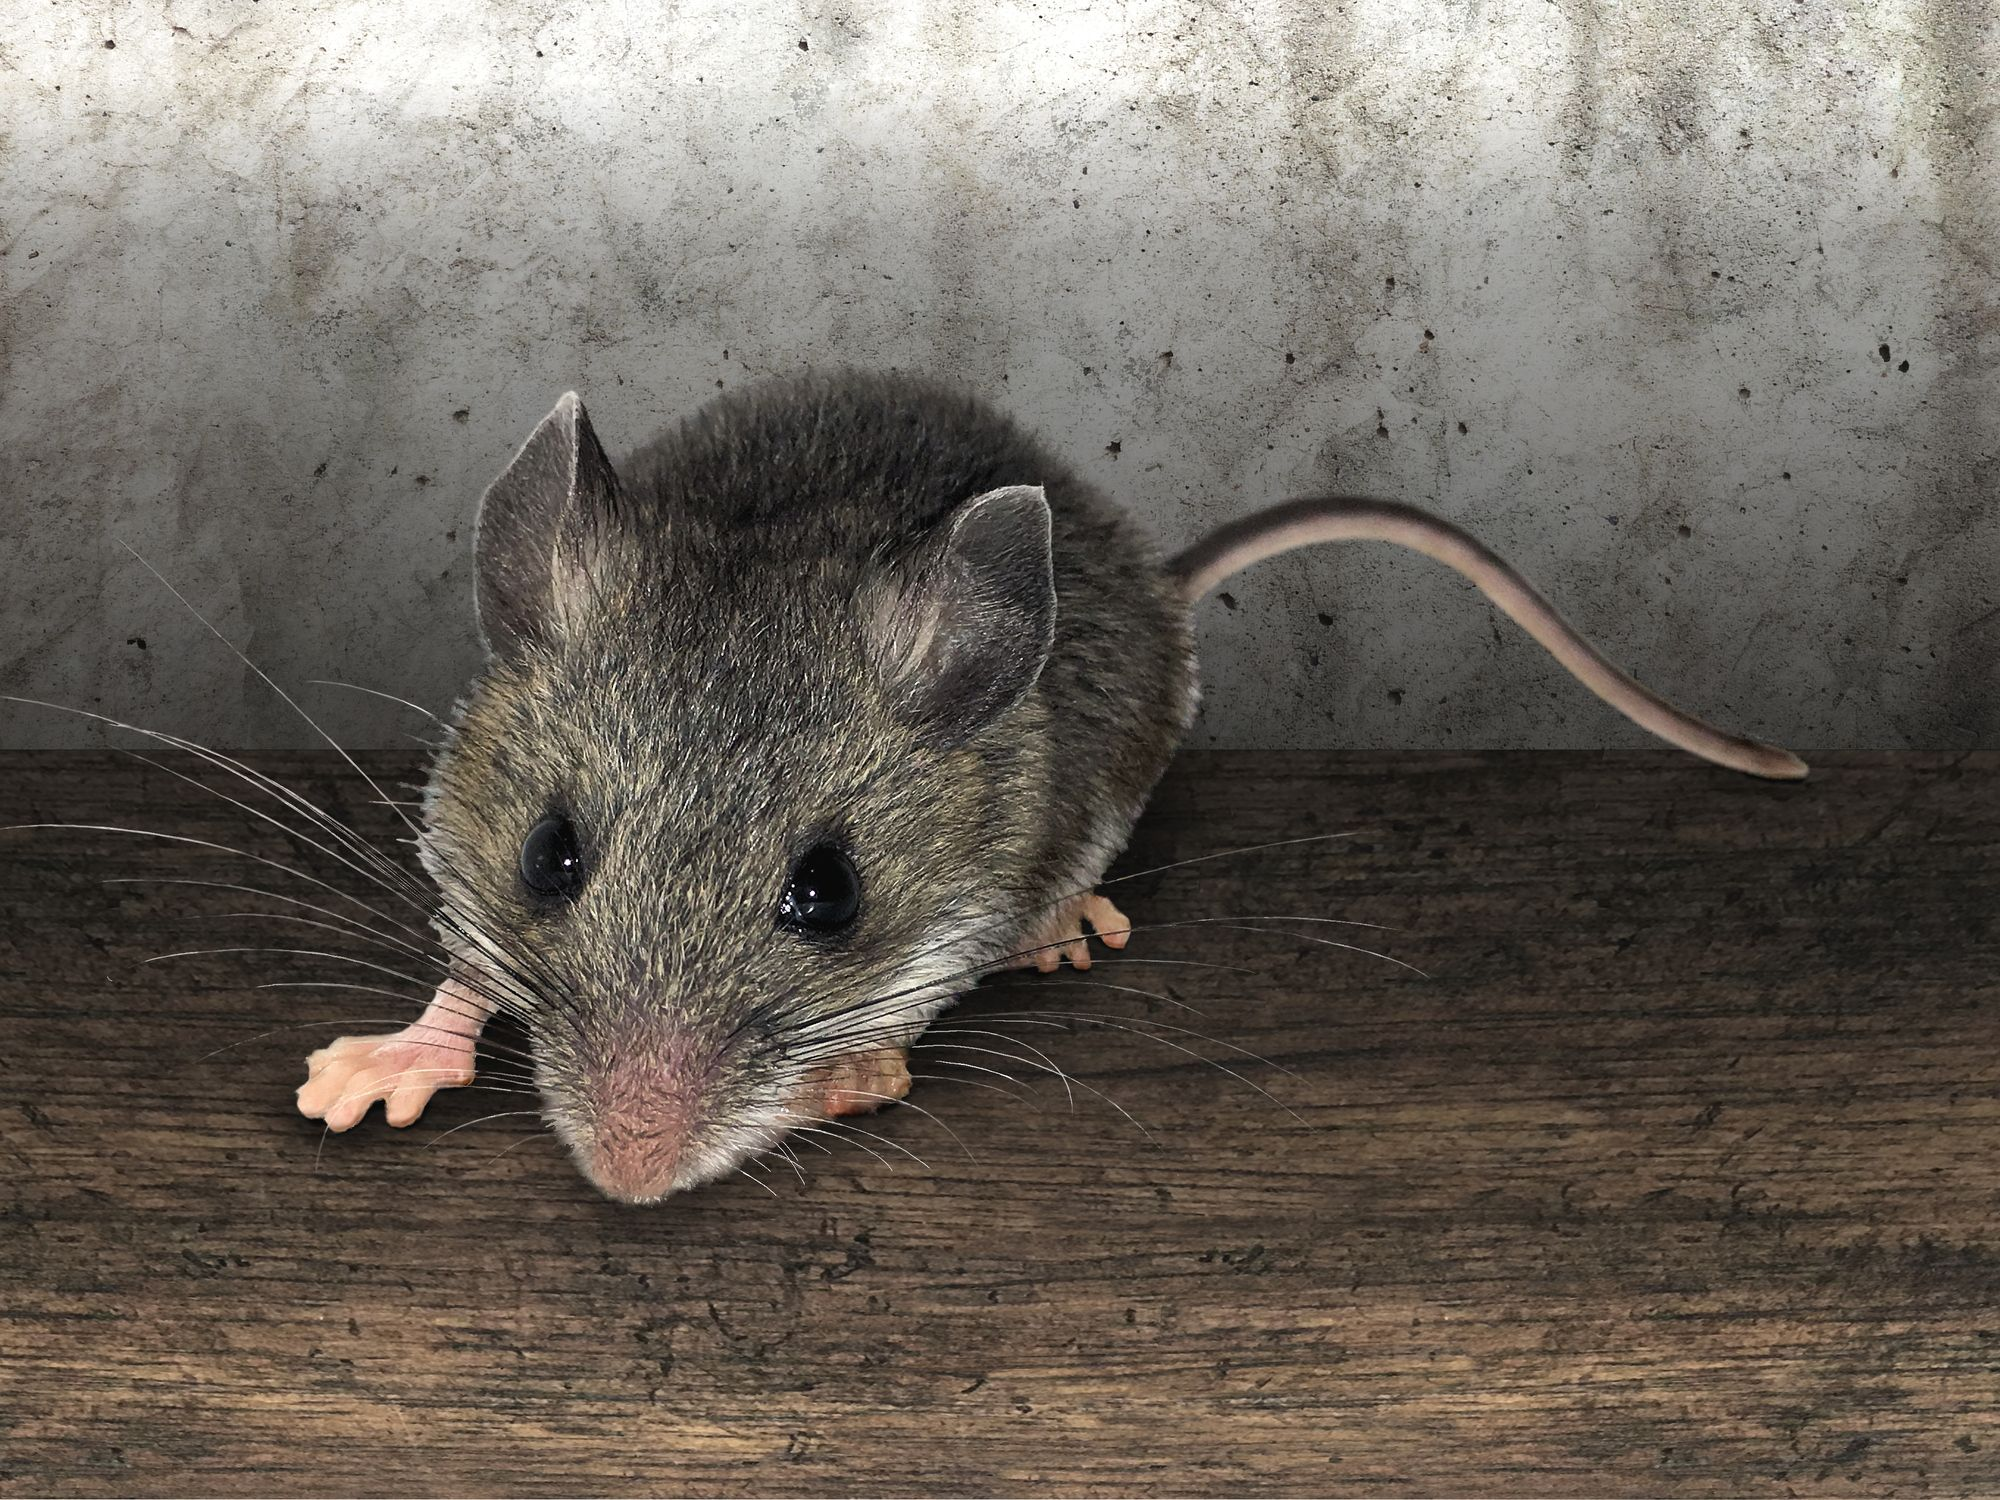 Rodent Tip Tuesday Mice Facts The House Mouse Is Considered One Of The Top 100 World S Worst Invaders Mice Are Afraid Of R Rodents House Mouse Exterminator